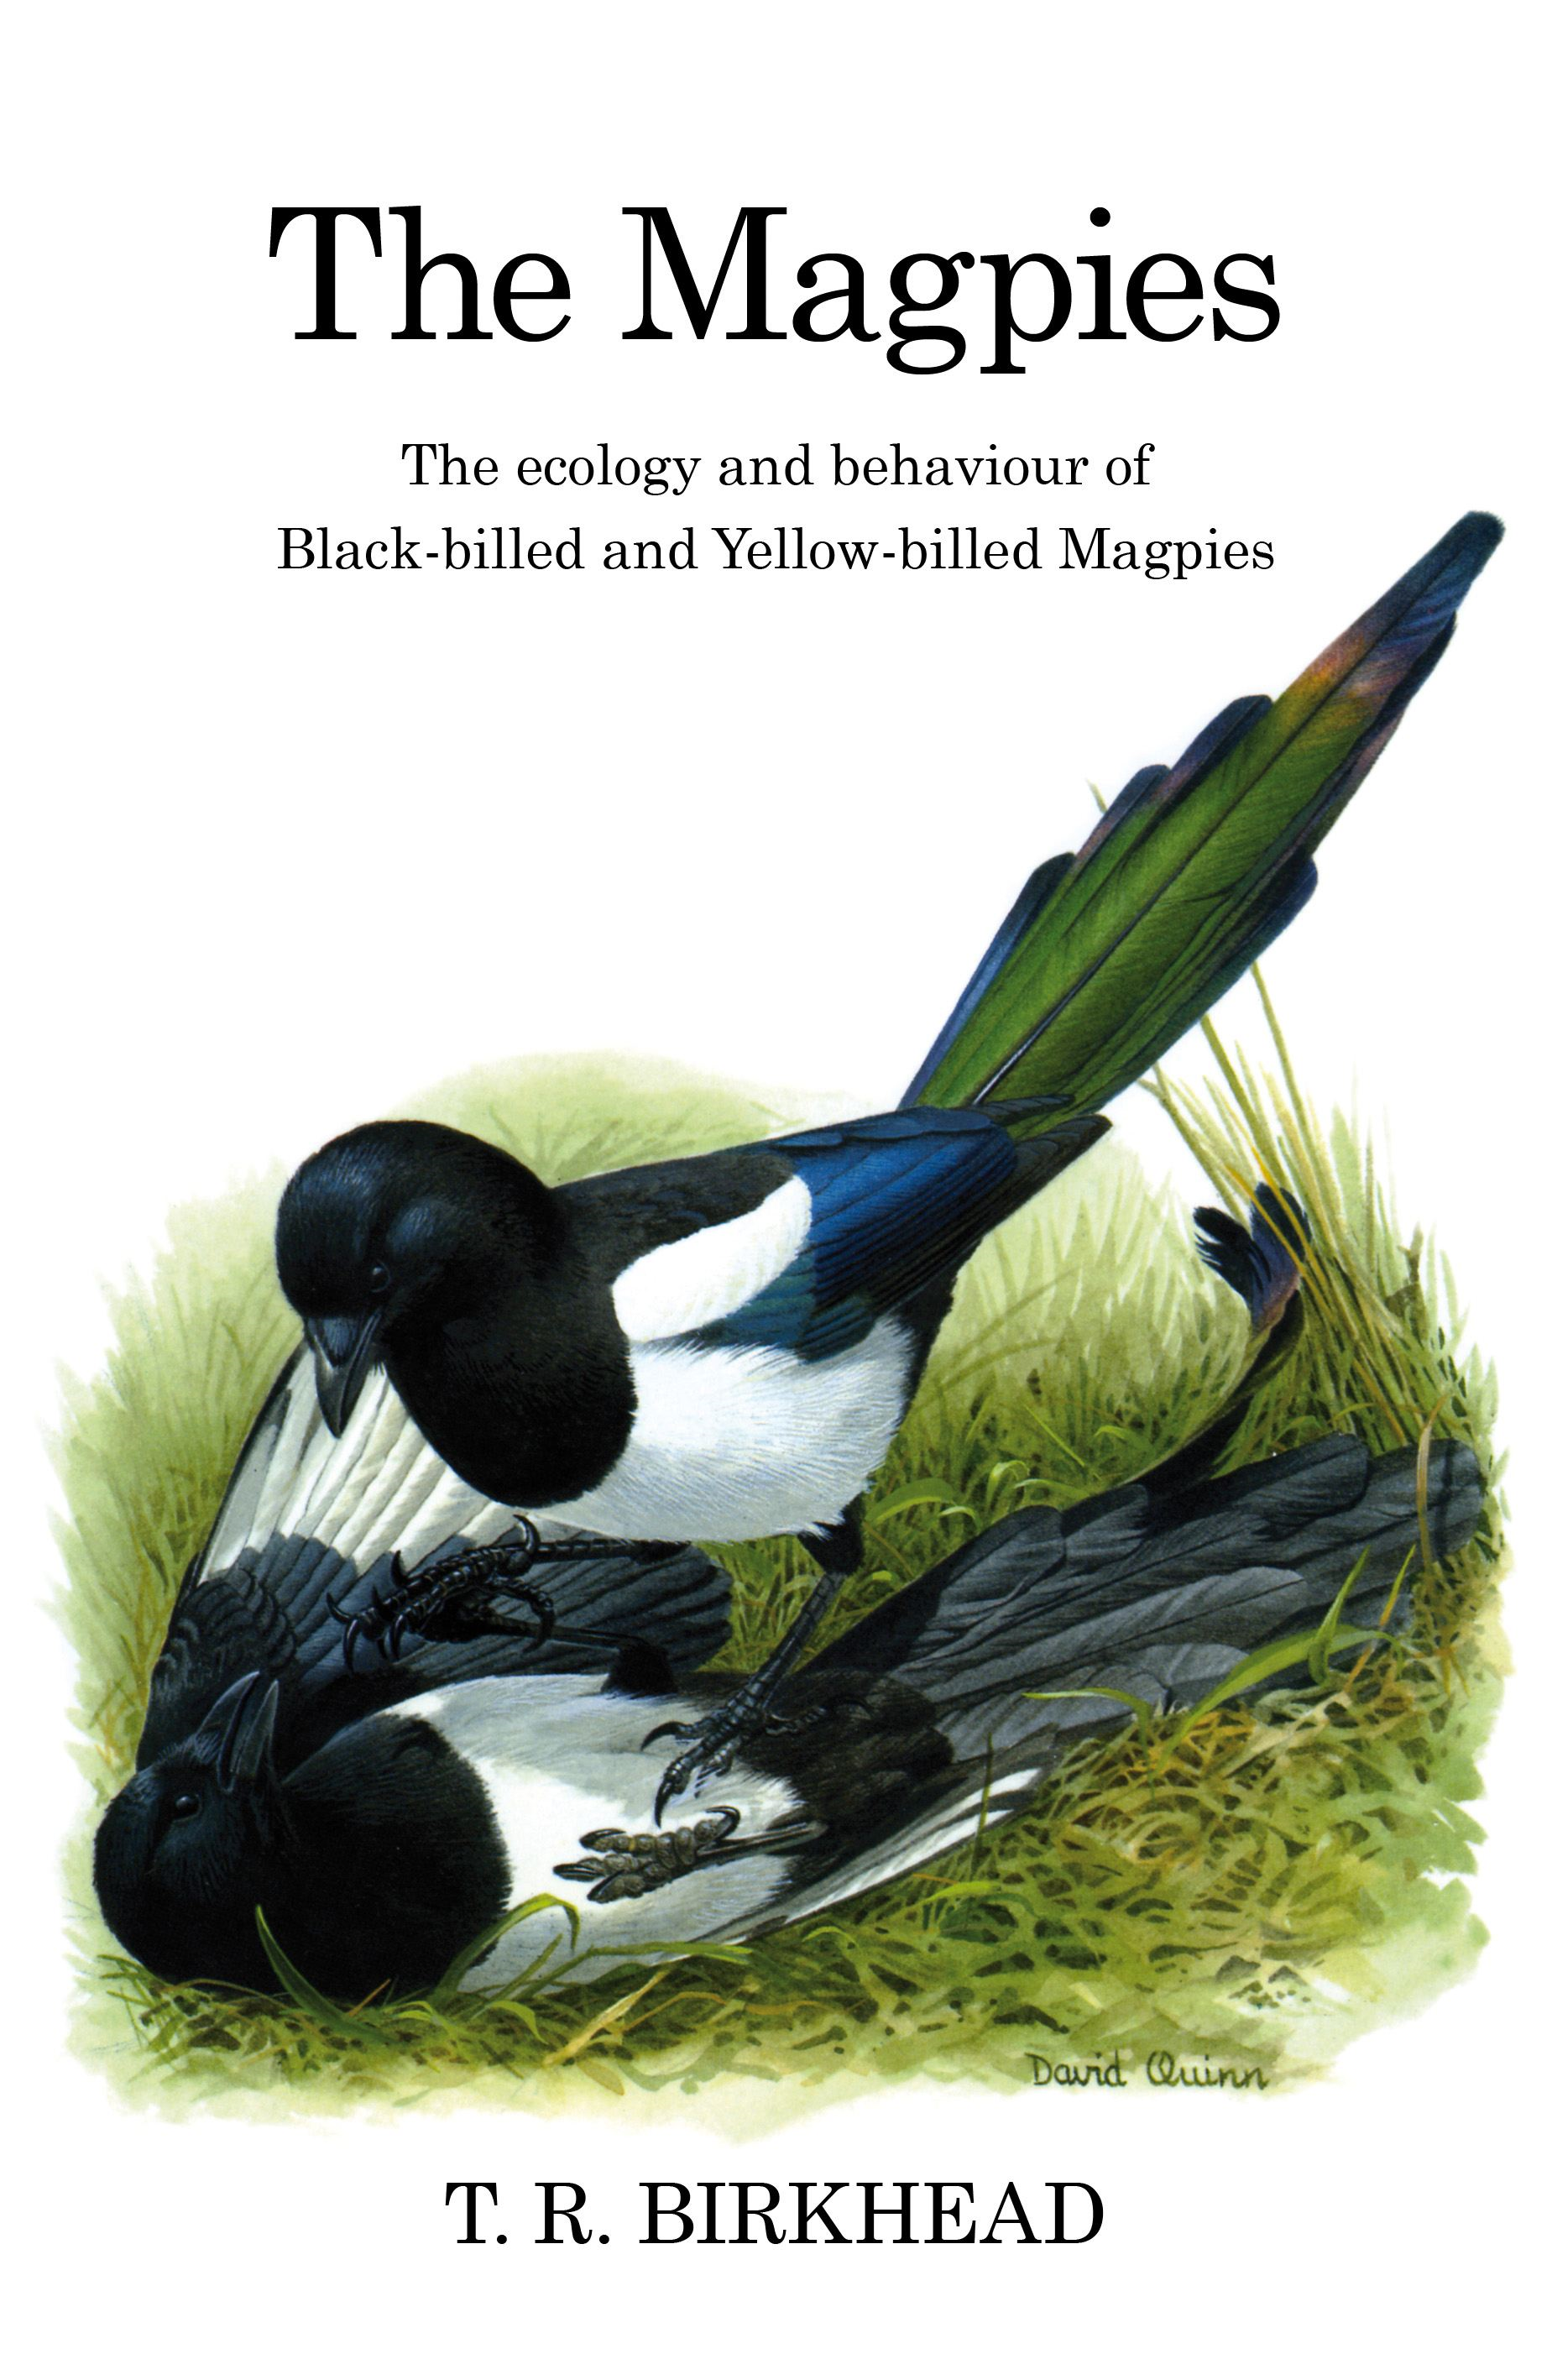 The Magpies: The Ecology and Behaviour of Black-Billed and Yellow-Billed Magpies By: Tim Birkhead